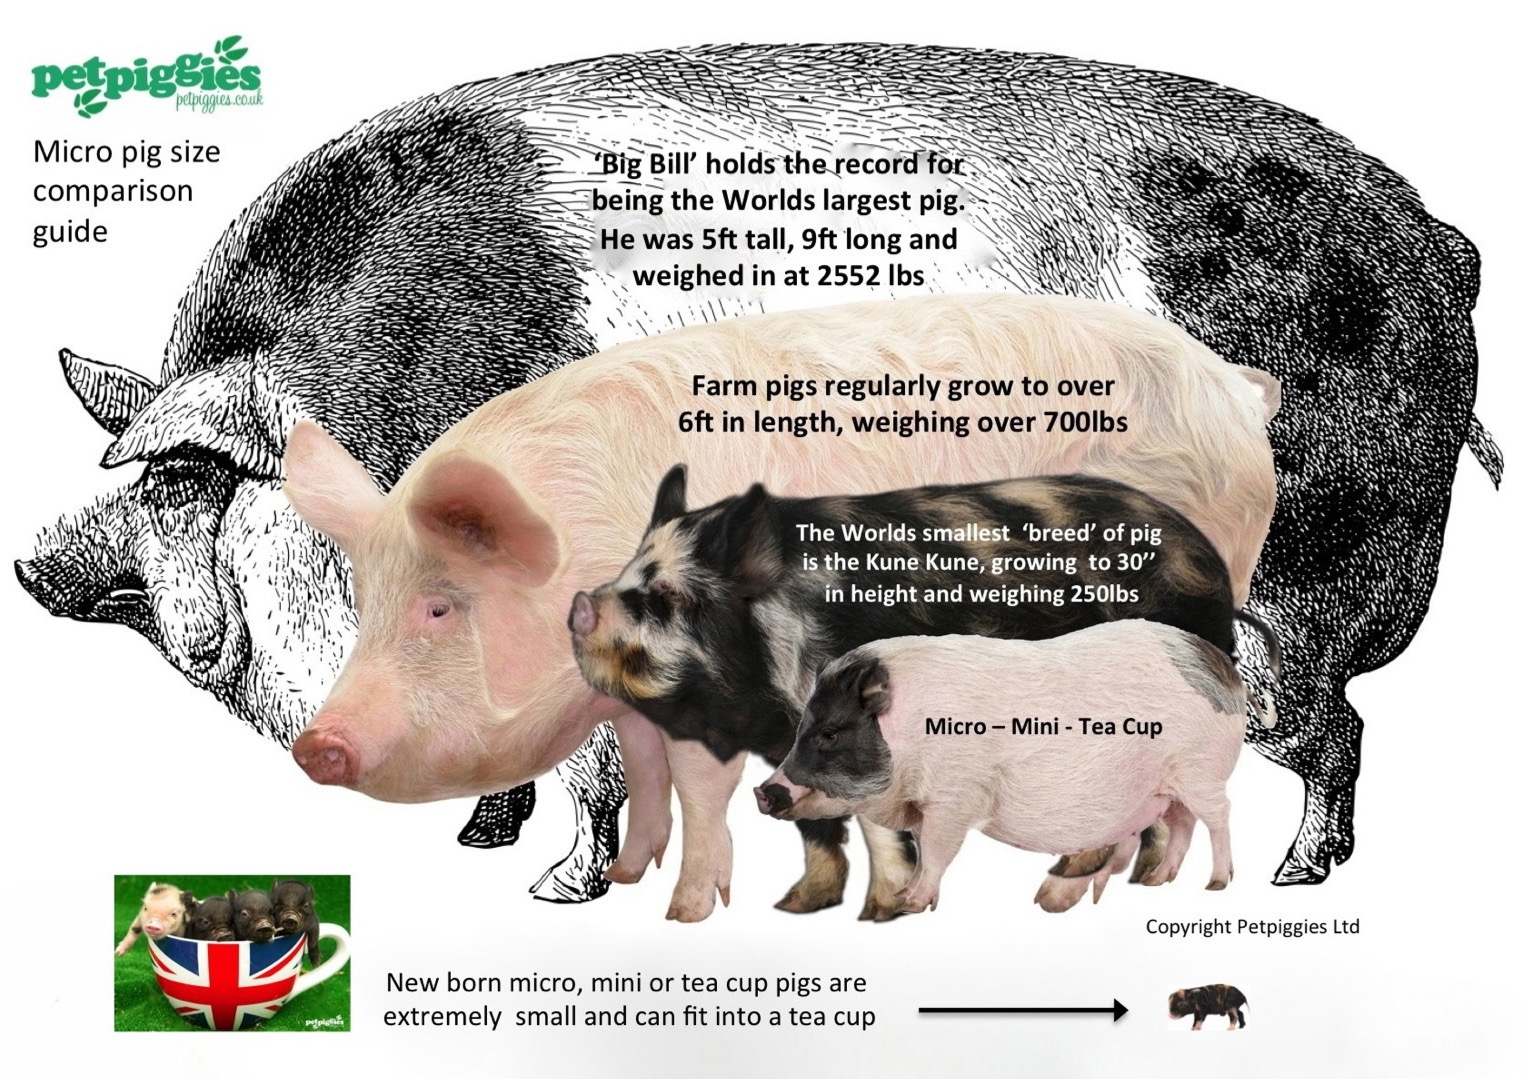 How big do micro pigs get?